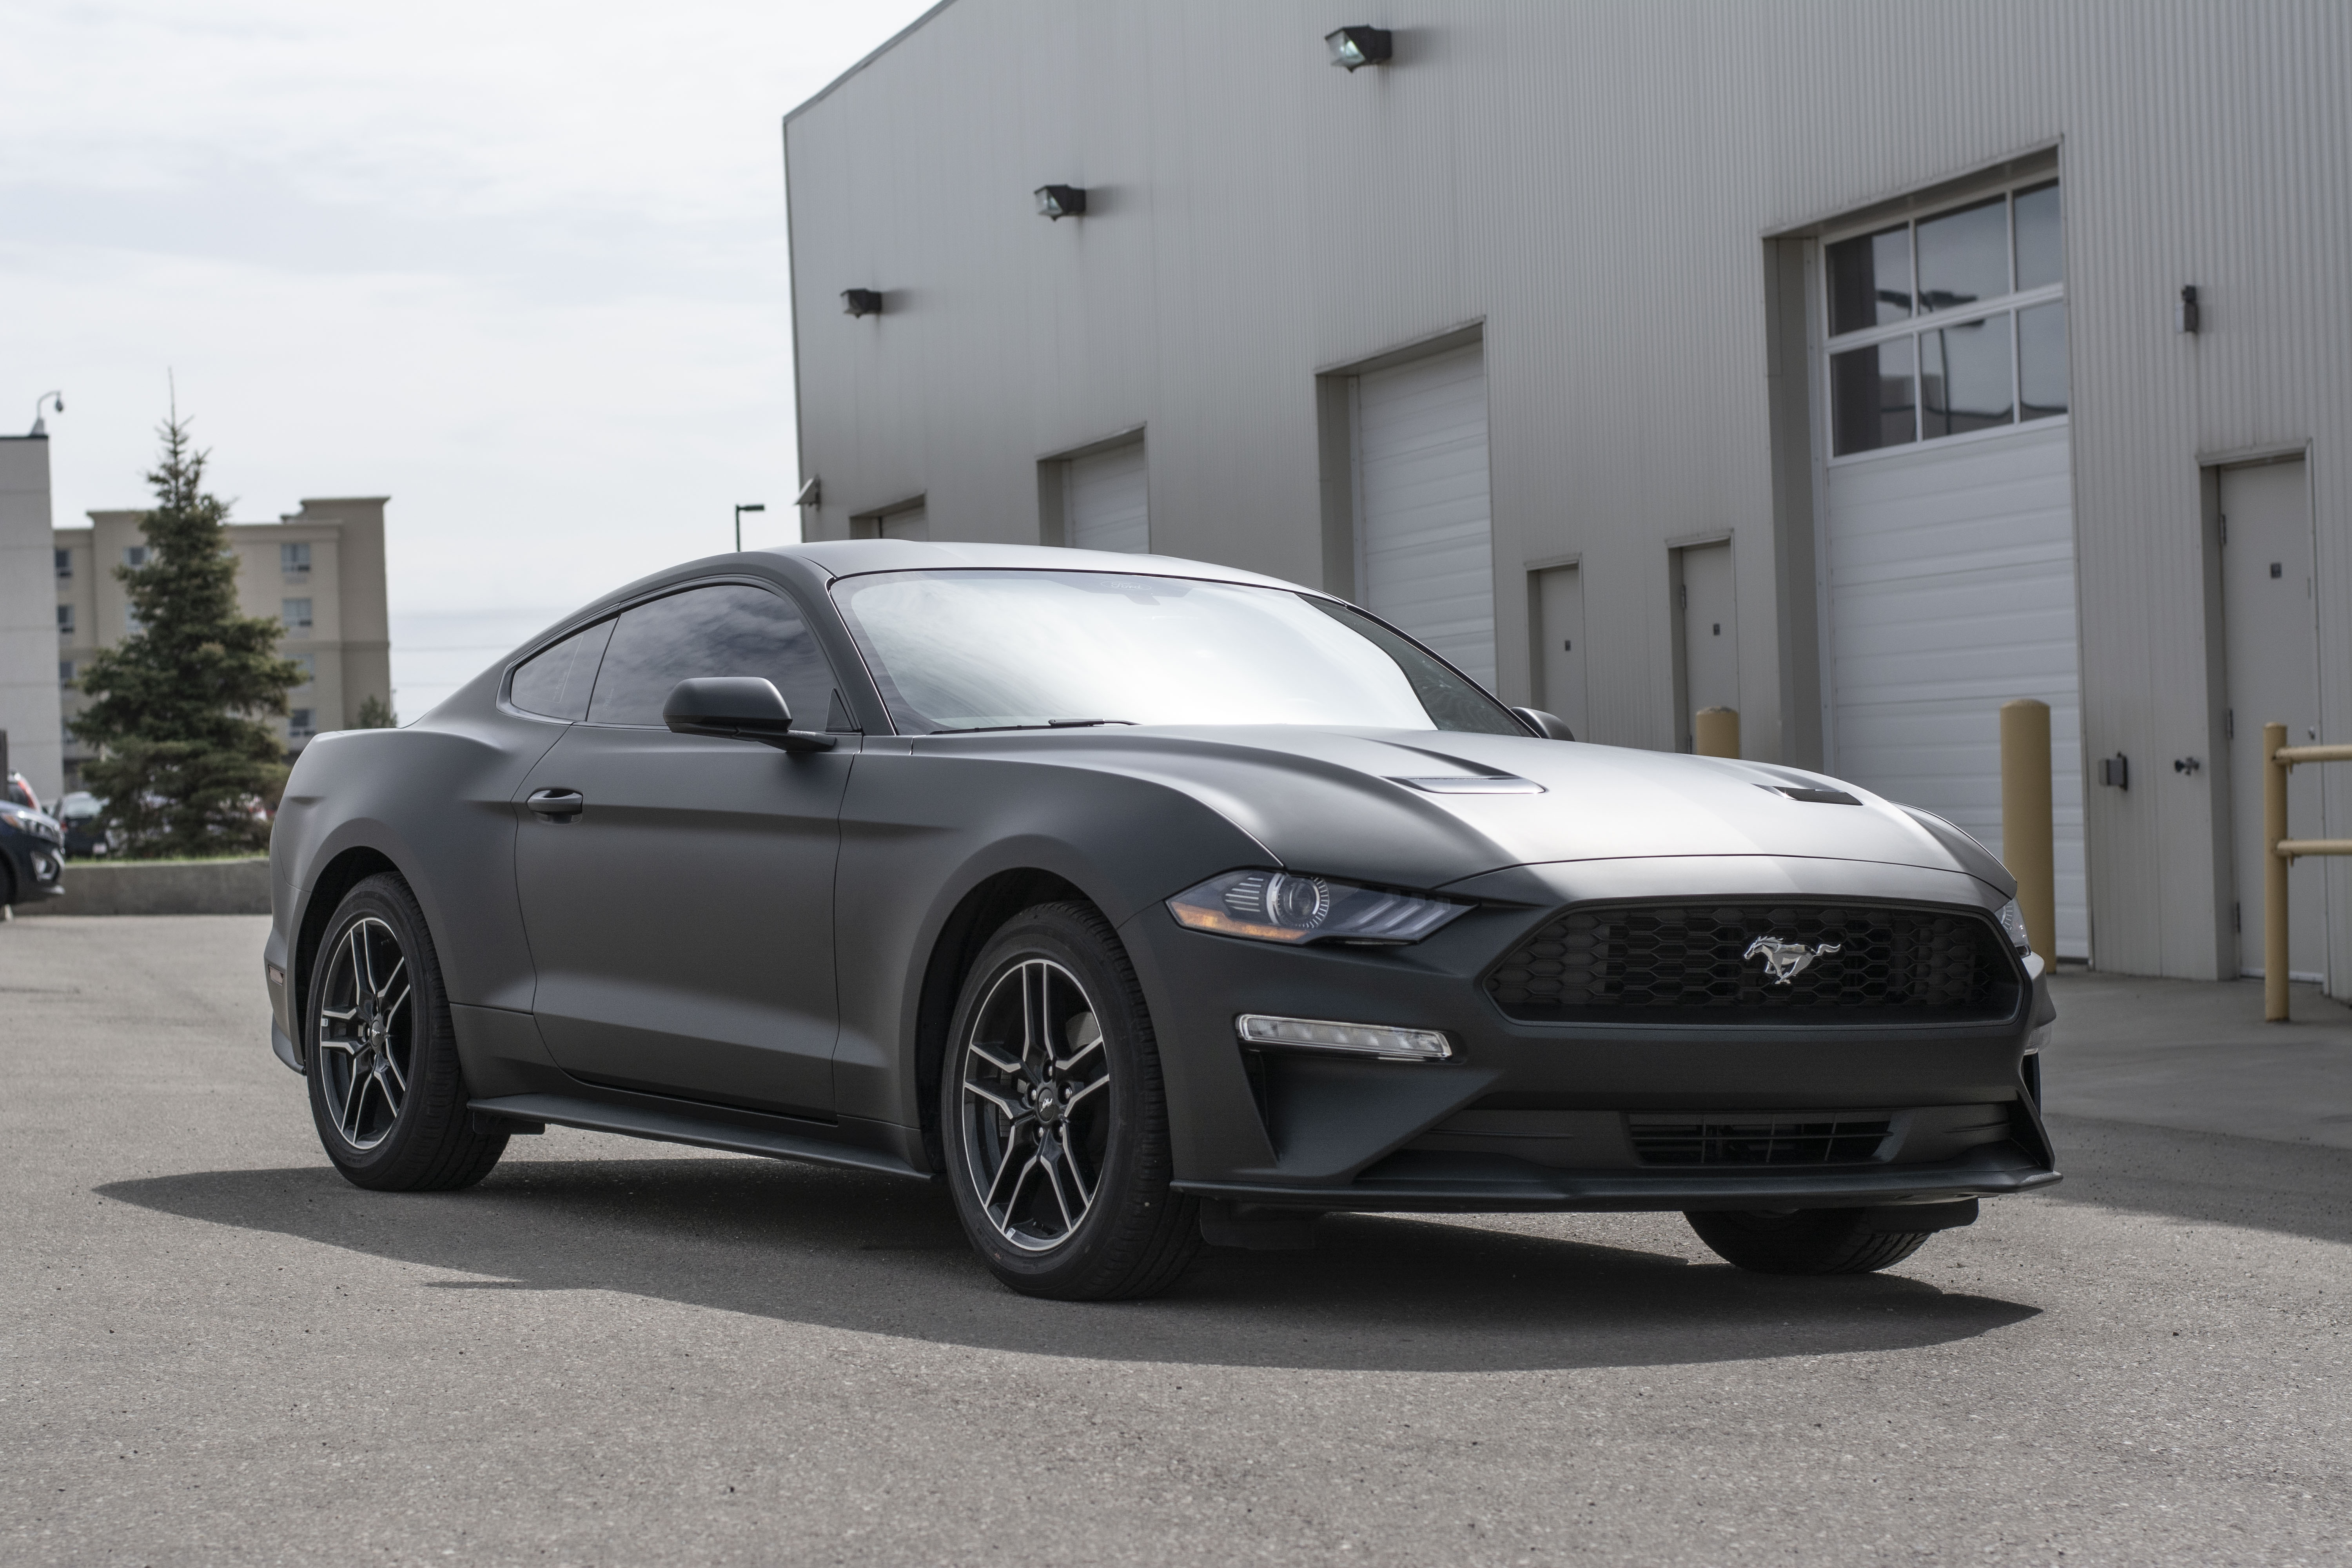 Ford Mustang wrapped in Avery Matte Black